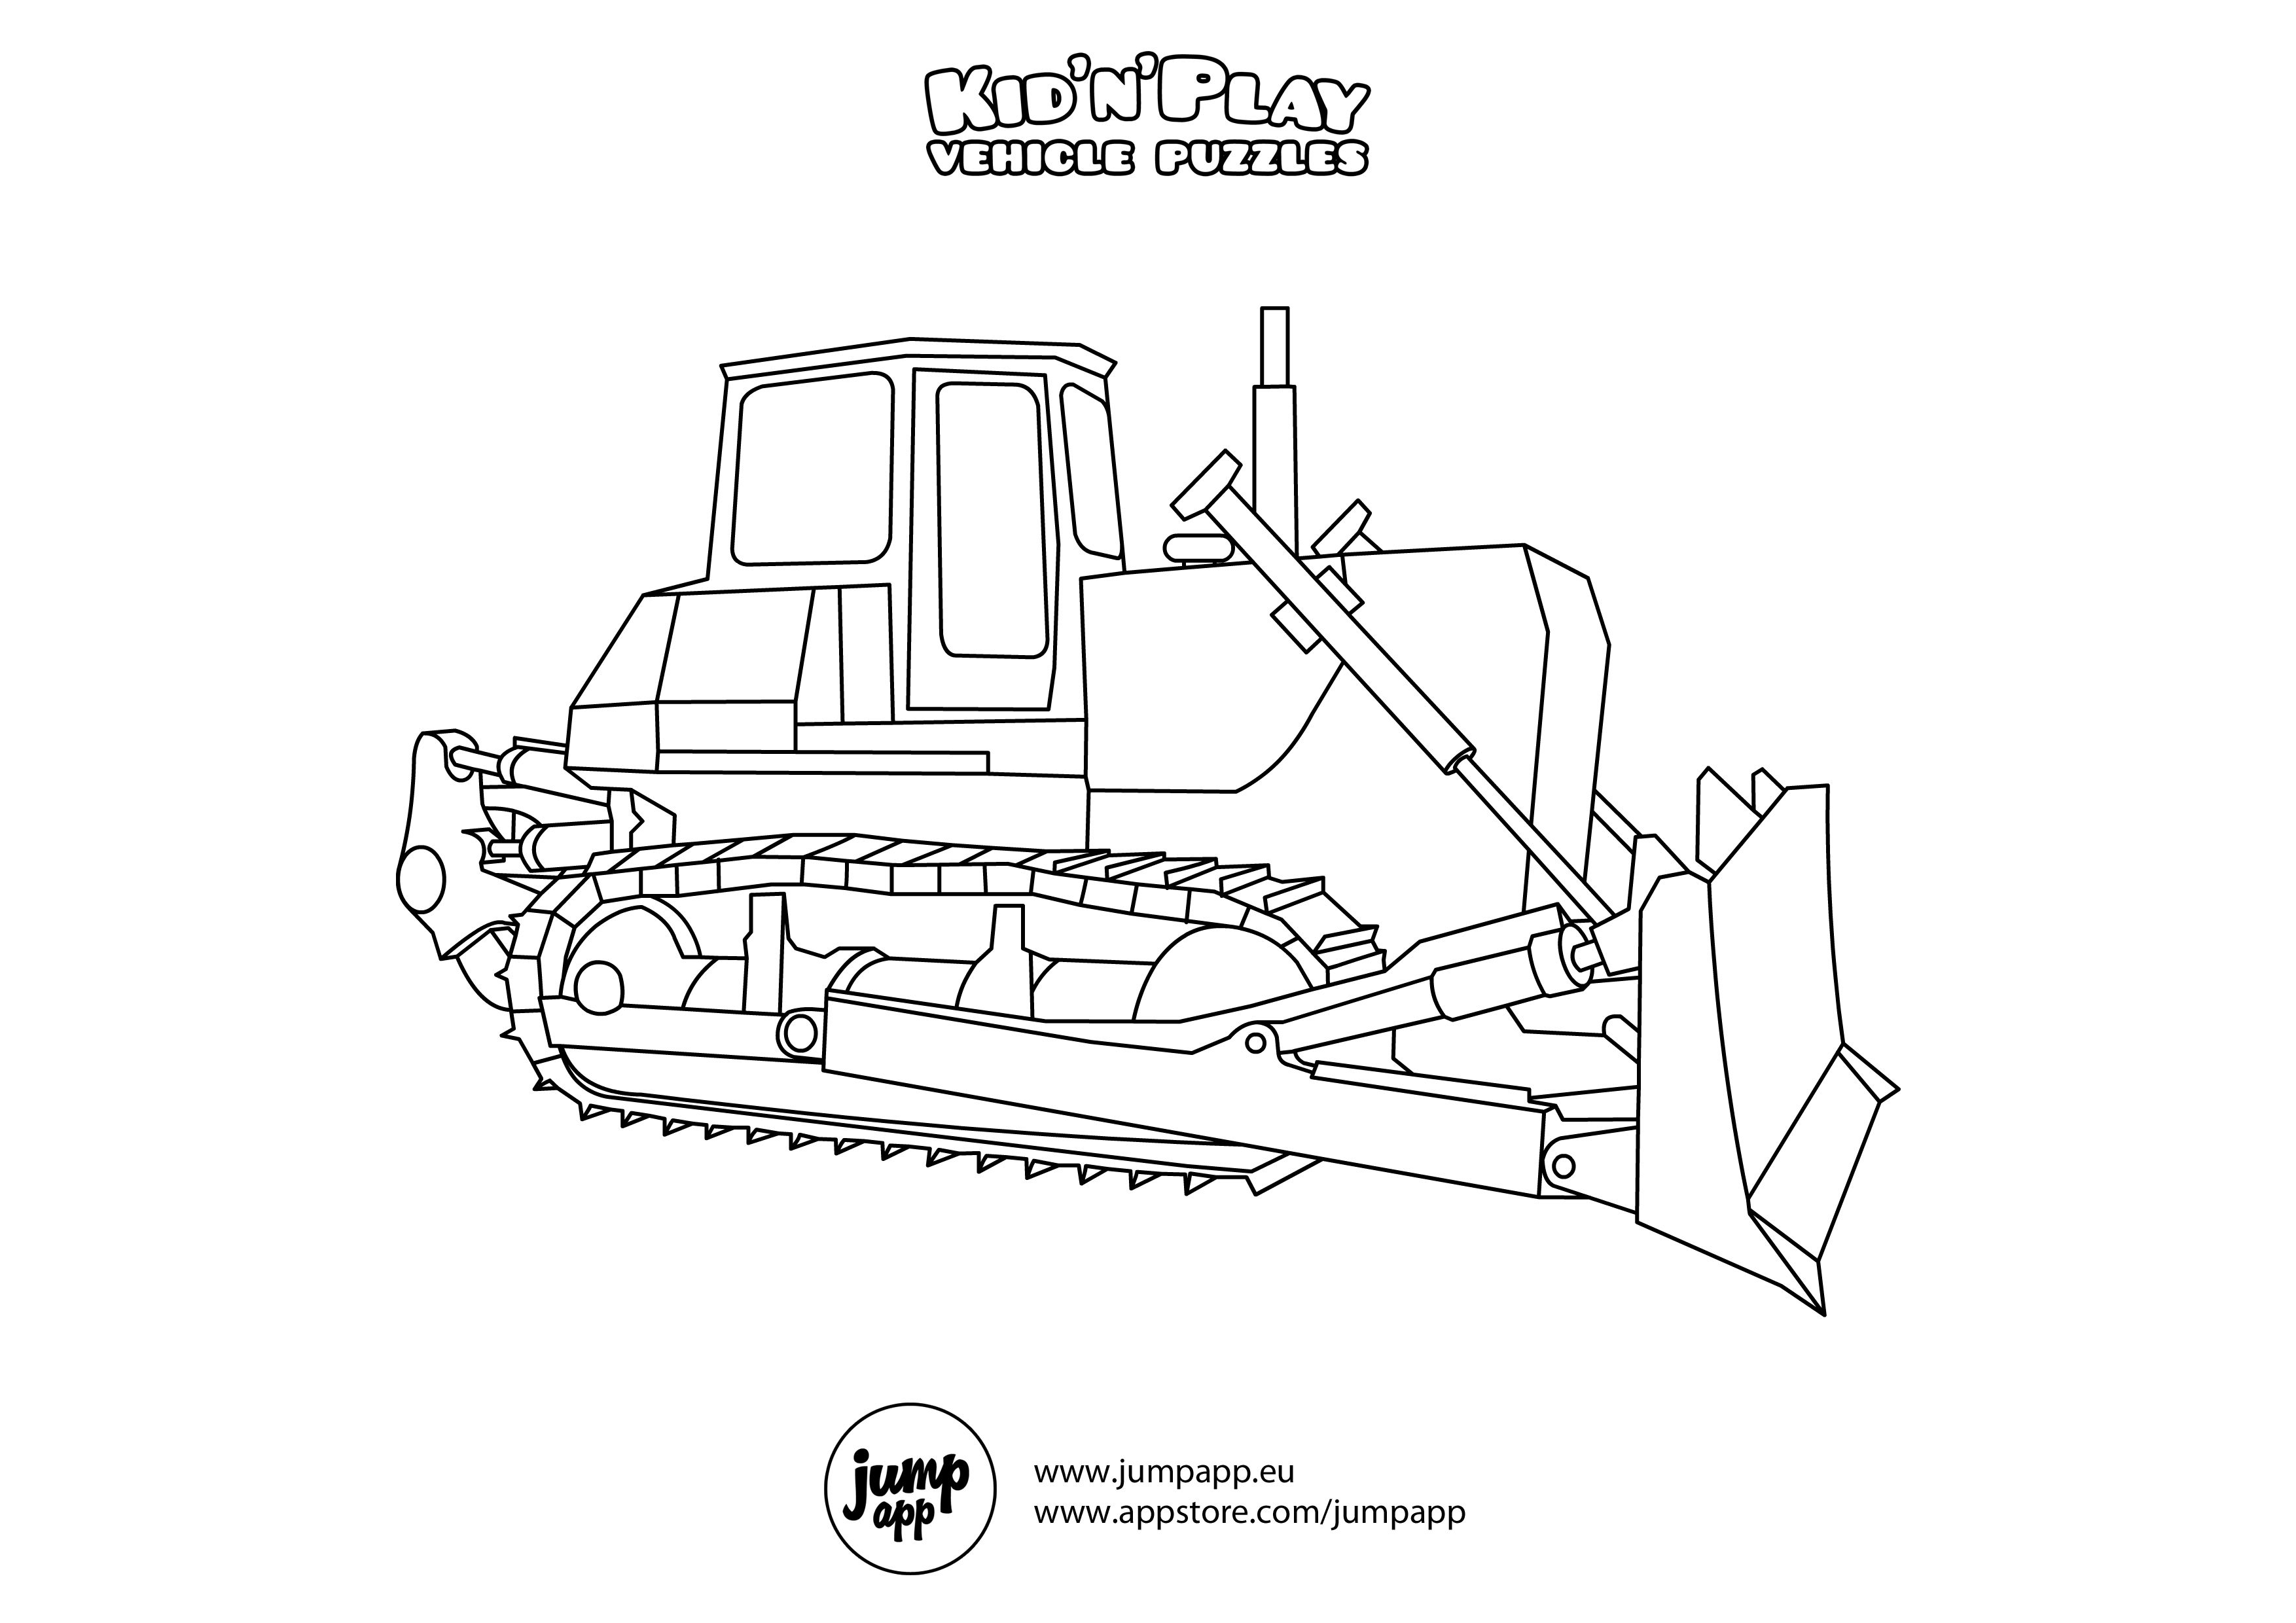 bull dozer coloring pages - photo#16